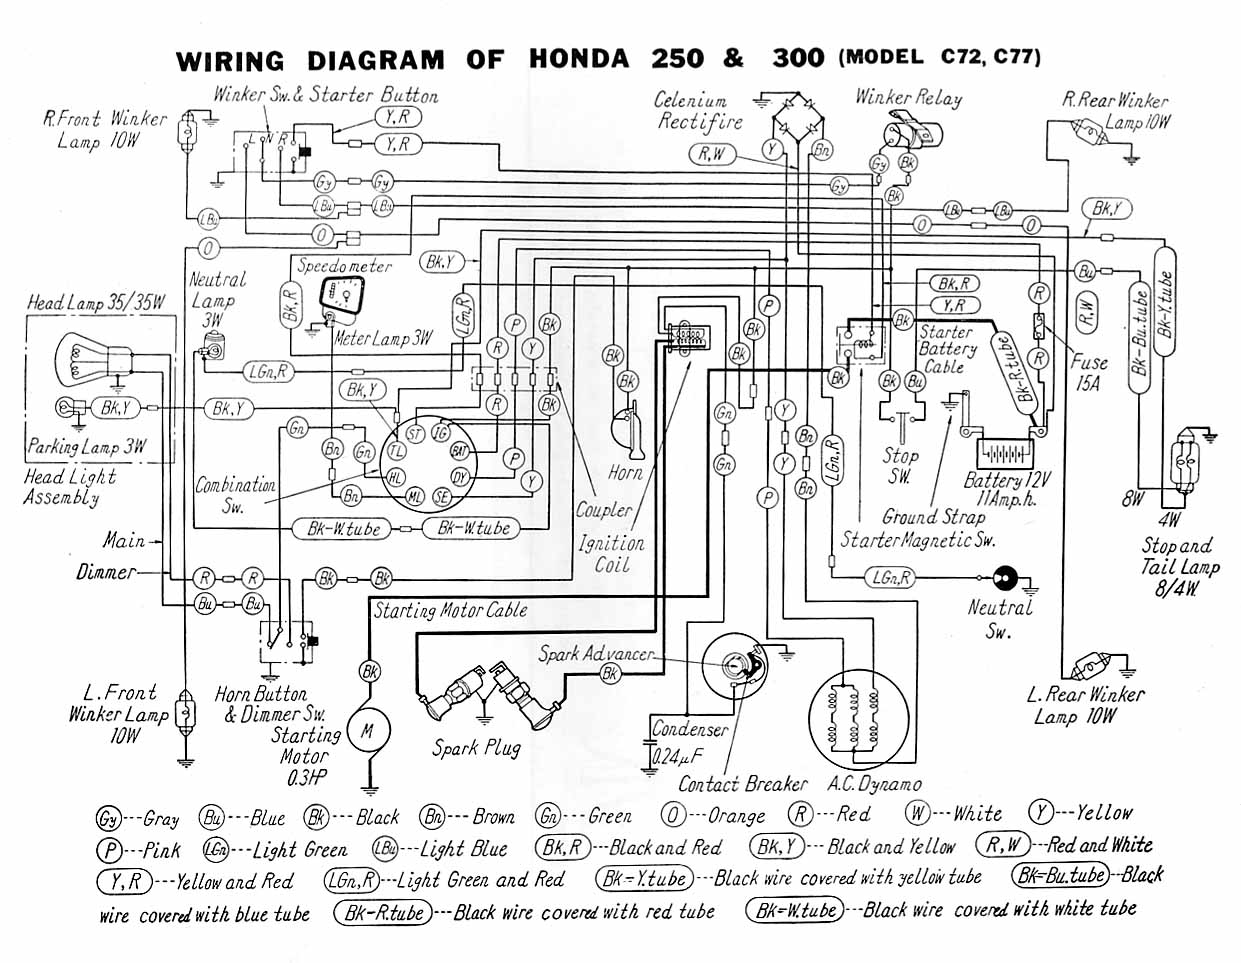 wiring diagramsHonda Motorcycle Wiring Diagrams Further Honda Xl 250 Wiring Diagram #3